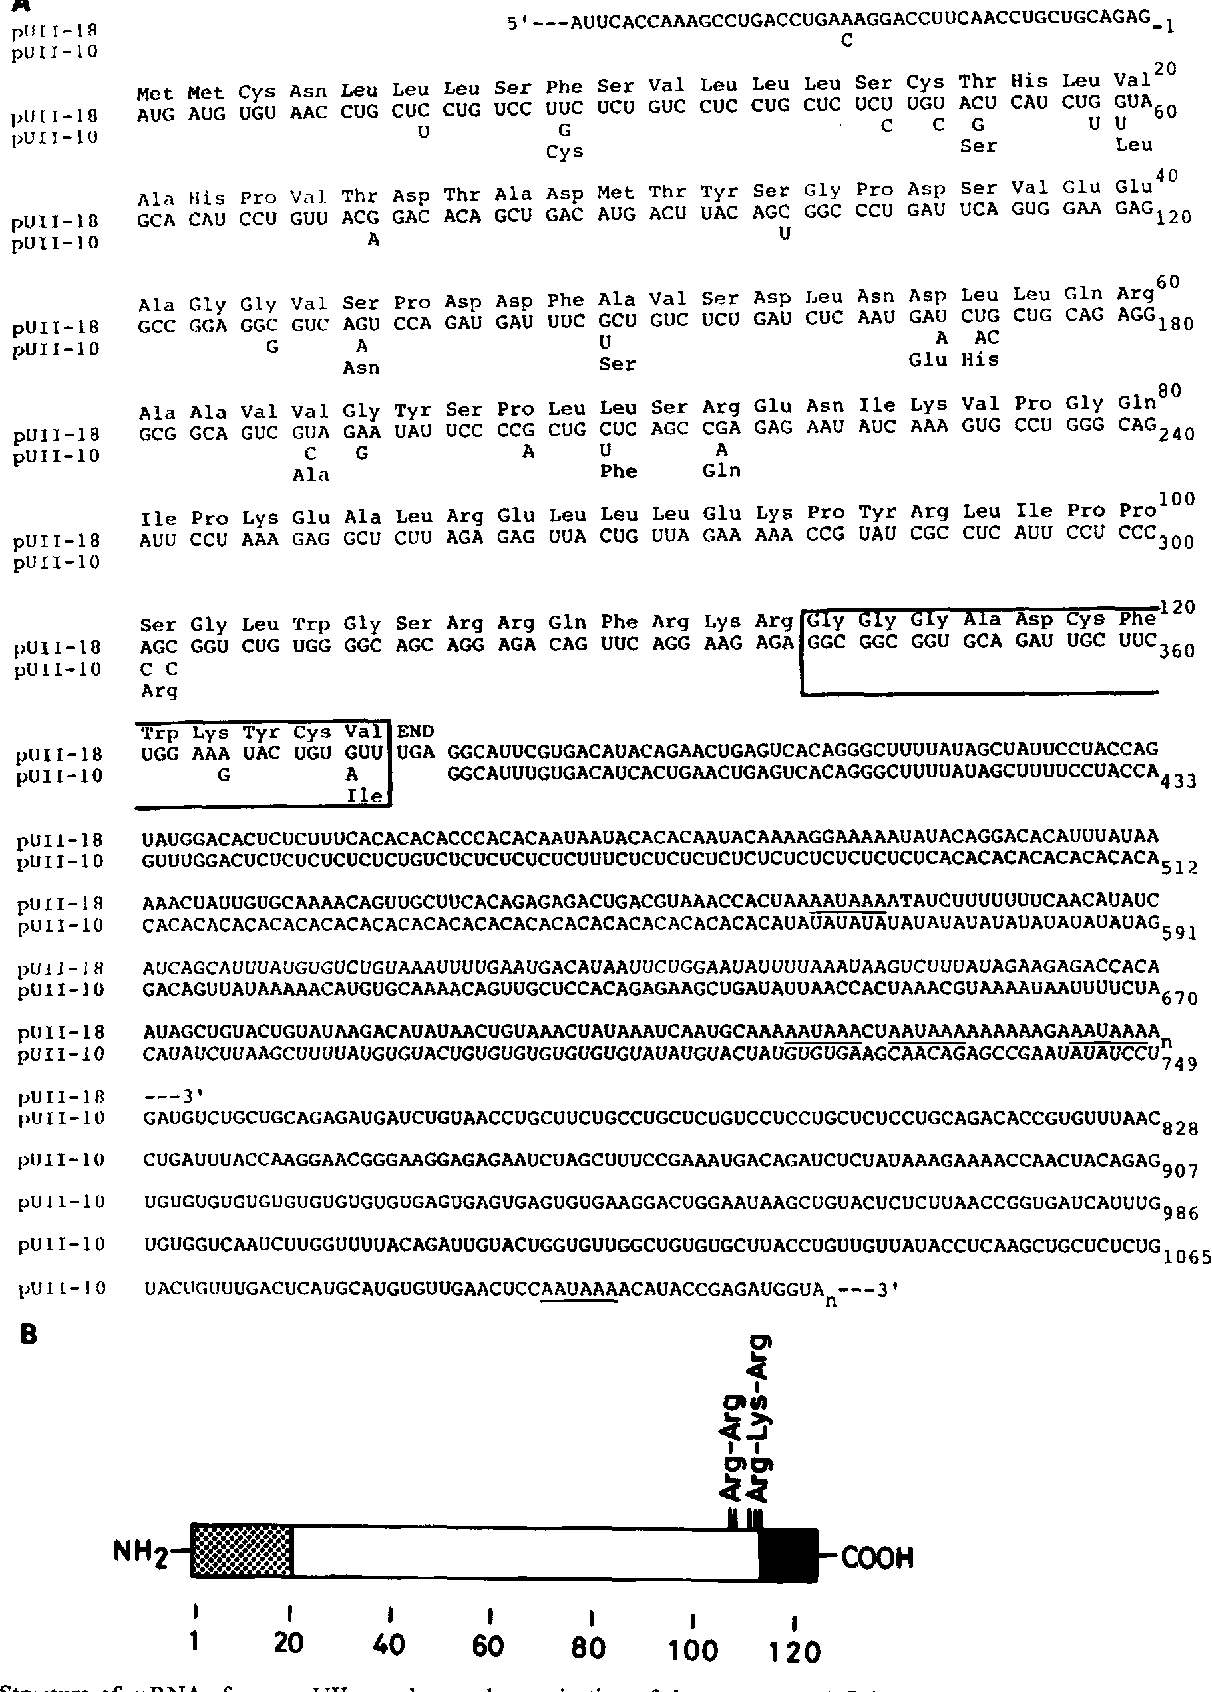 Figure 2.. Structure of mRNAs for carp UII-(Y and -y and organization of the precursor. A, Primary structure of mRNAs for UII-CY and -7. Nucleotide sequences of mRNAs are deduced from the sequences of cDNA inserts (pUII-18 for UII-CY and pUII-10 for UII-7). Nucleotide residues are numbered in the 5' to 3' direction starting with the first residue of the AUG triplet (methionine) as no. 1. The deduced amino acid residues are numbered beginning with the initiating methionine. UII sequences are boxed. Blank spaces in pUII-10 indicate the sequence identity with pUII- 18. AAUAAA sequences in the 3'-untranslated region are underlined. B, Schematic representation of the structure of the precursor of either UII-a or -7. UII sequence is indicated by a black box and the putative signal peptide is indicated by a stippled box. Proteolytic sites, Arg-Arg and Arg-Lys-Arg, are shown. Amino acid numbers are given at the bottom. Only 12 amino acid substitutions are observed between the precursors of UII-a and -7.